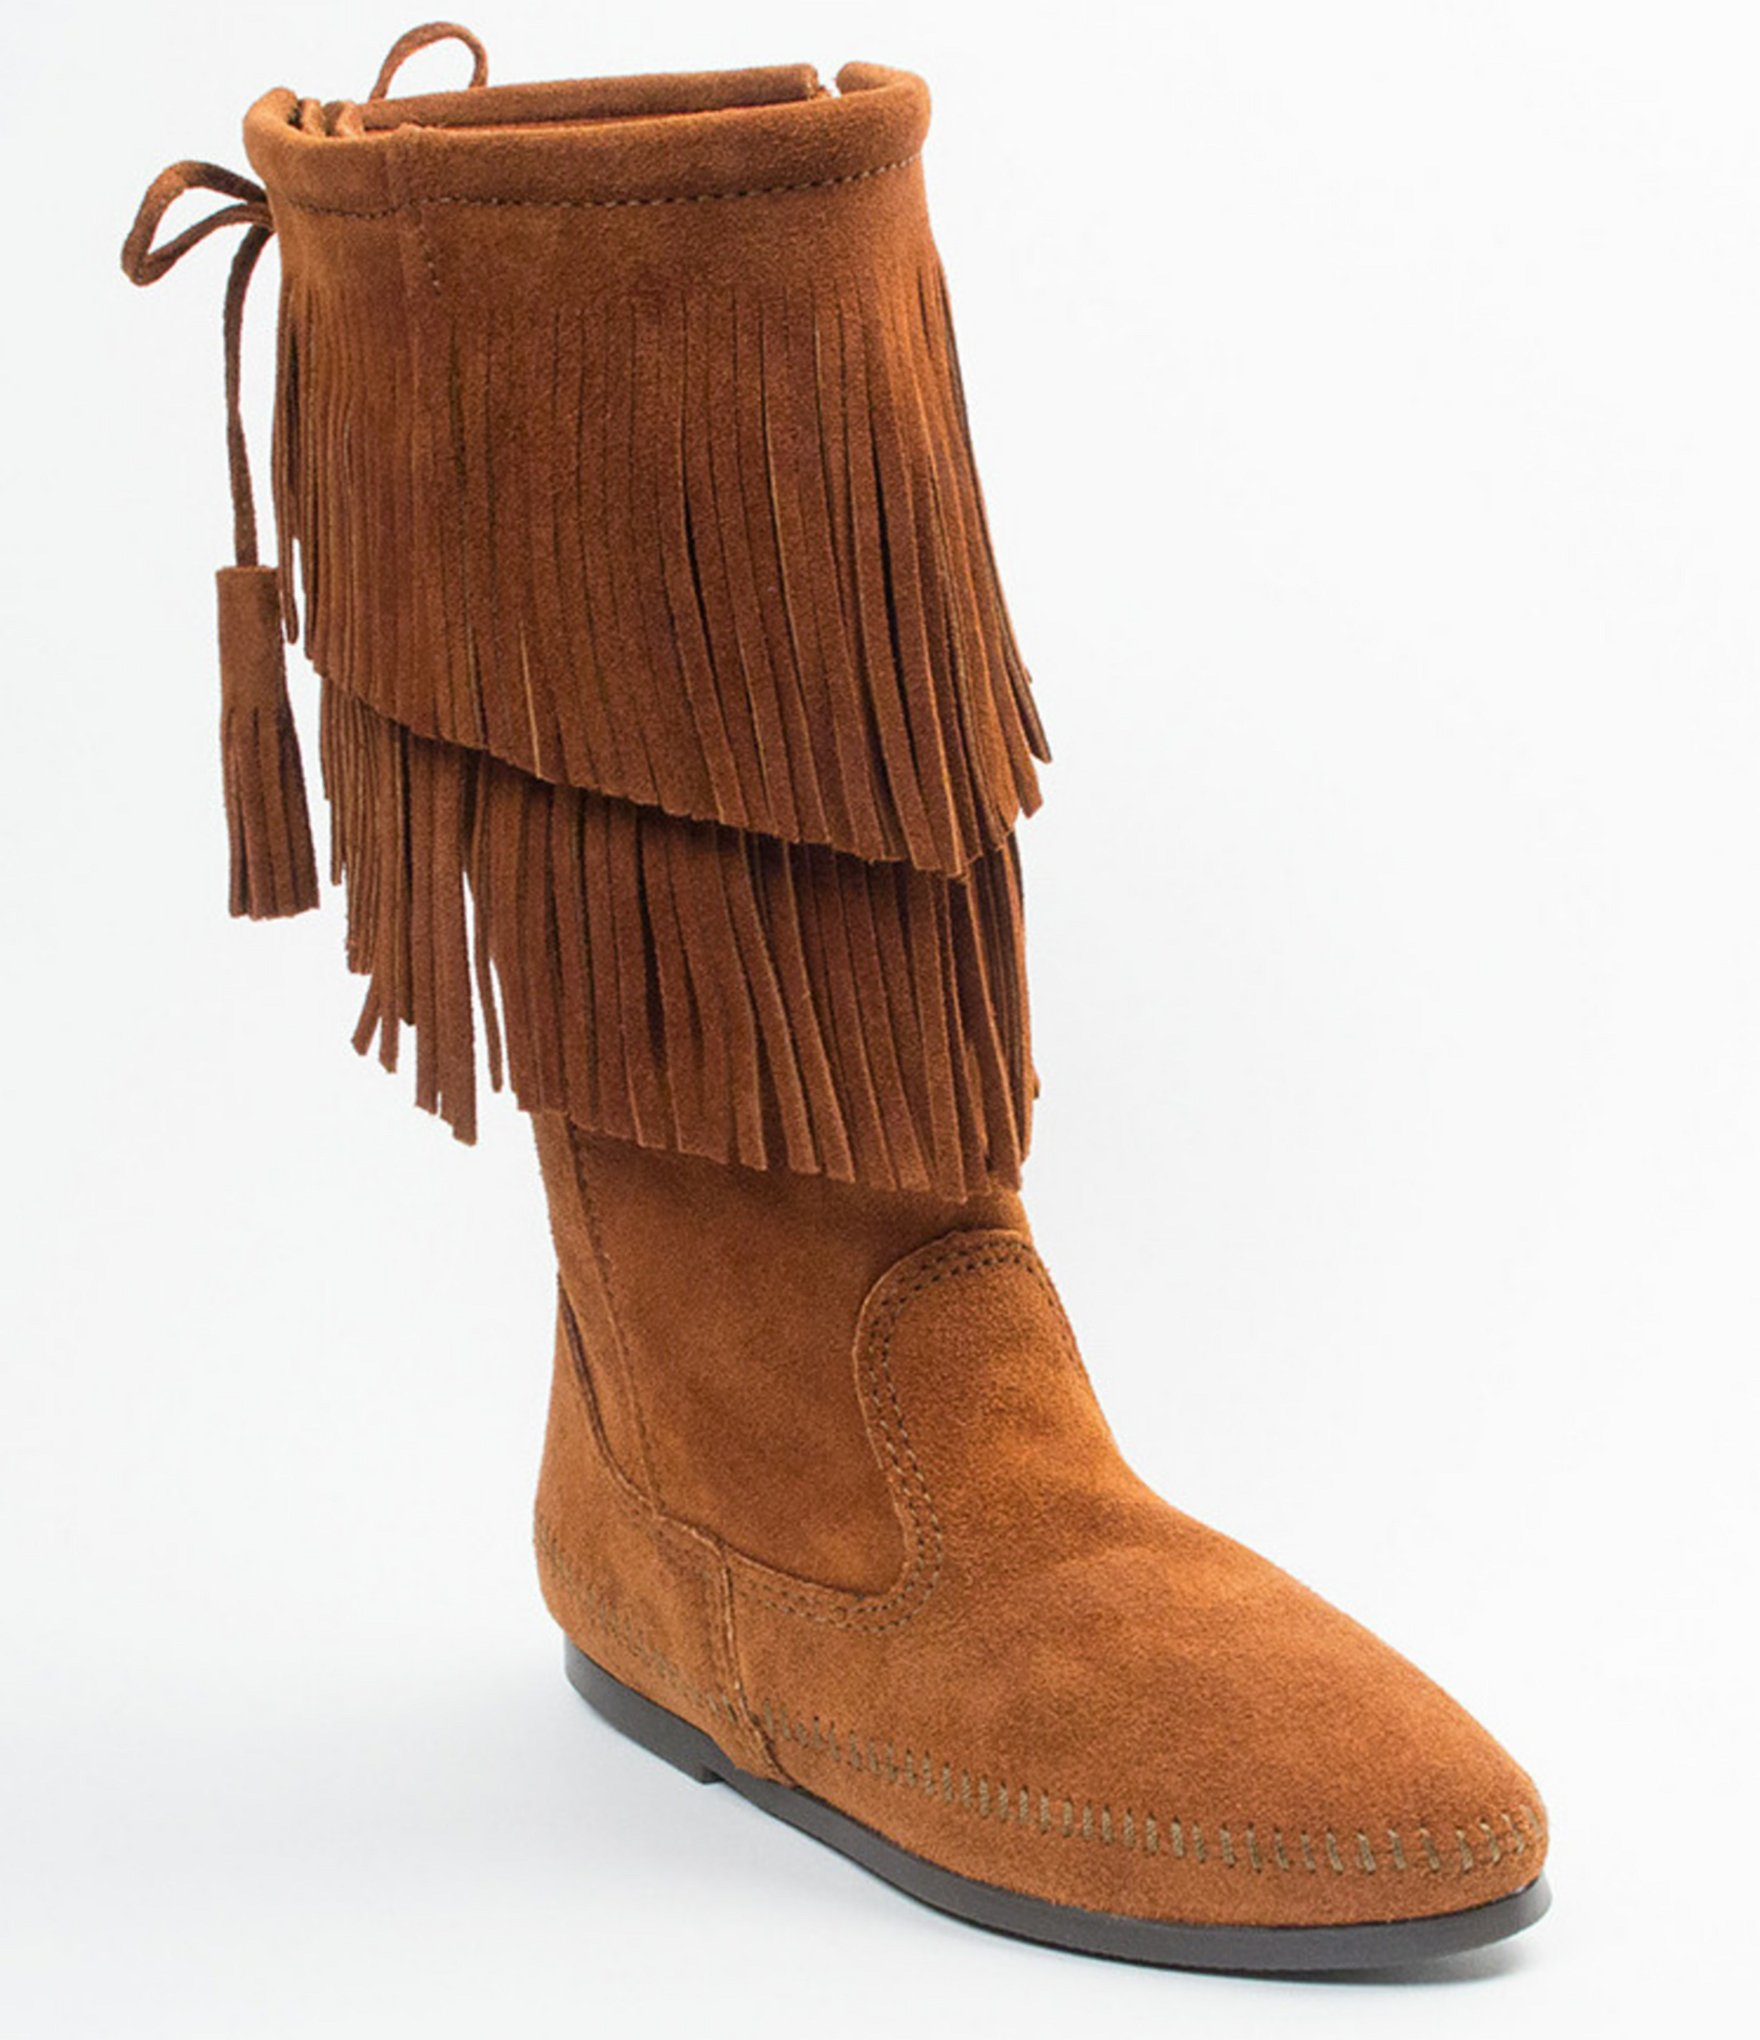 Free shipping BOTH ways on fringe boots, from our vast selection of styles. Fast delivery, and 24/7/ real-person service with a smile. Click or call